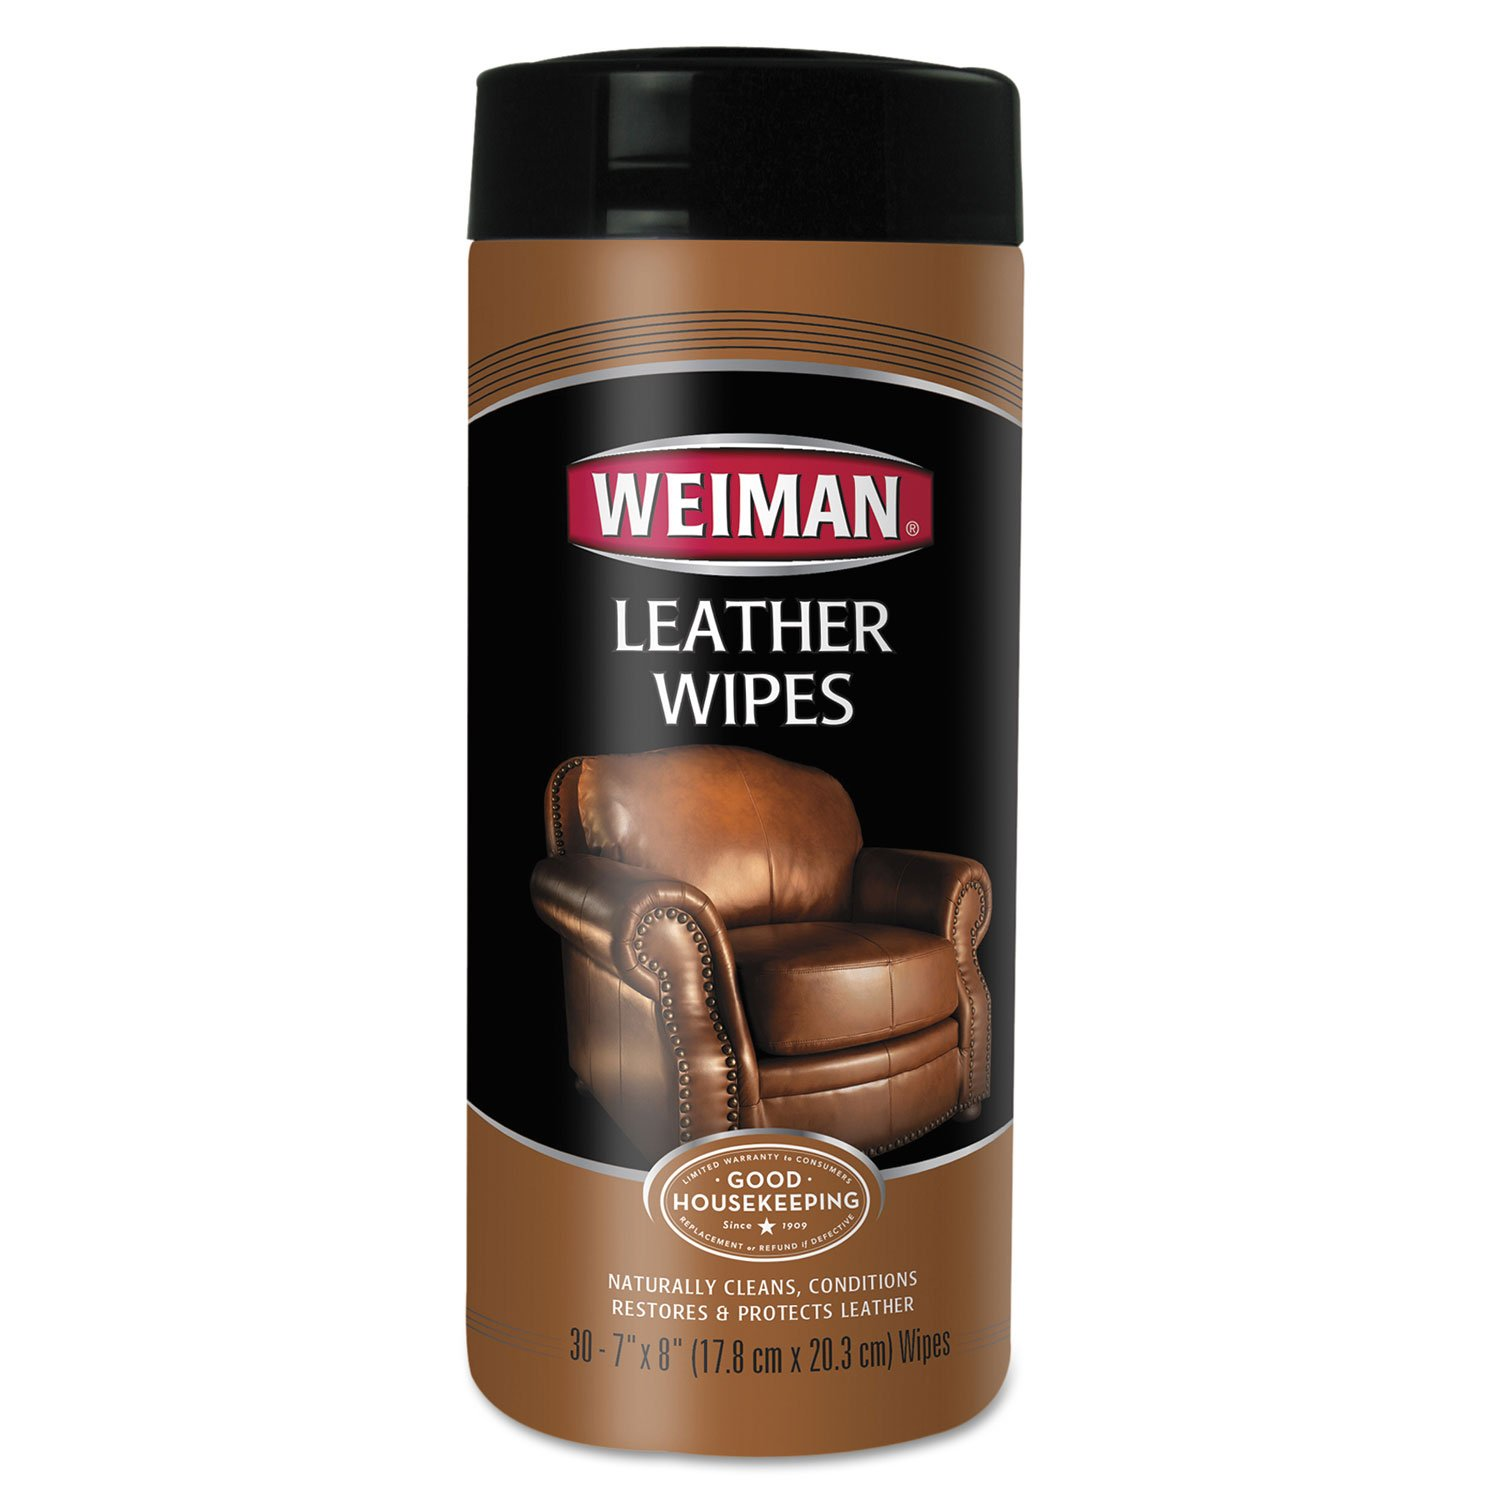 WEIMAN WHOLESALE PRICER Leather Wipes, 7 X 8, 30/Canister, 4 Canisters/Carton, New